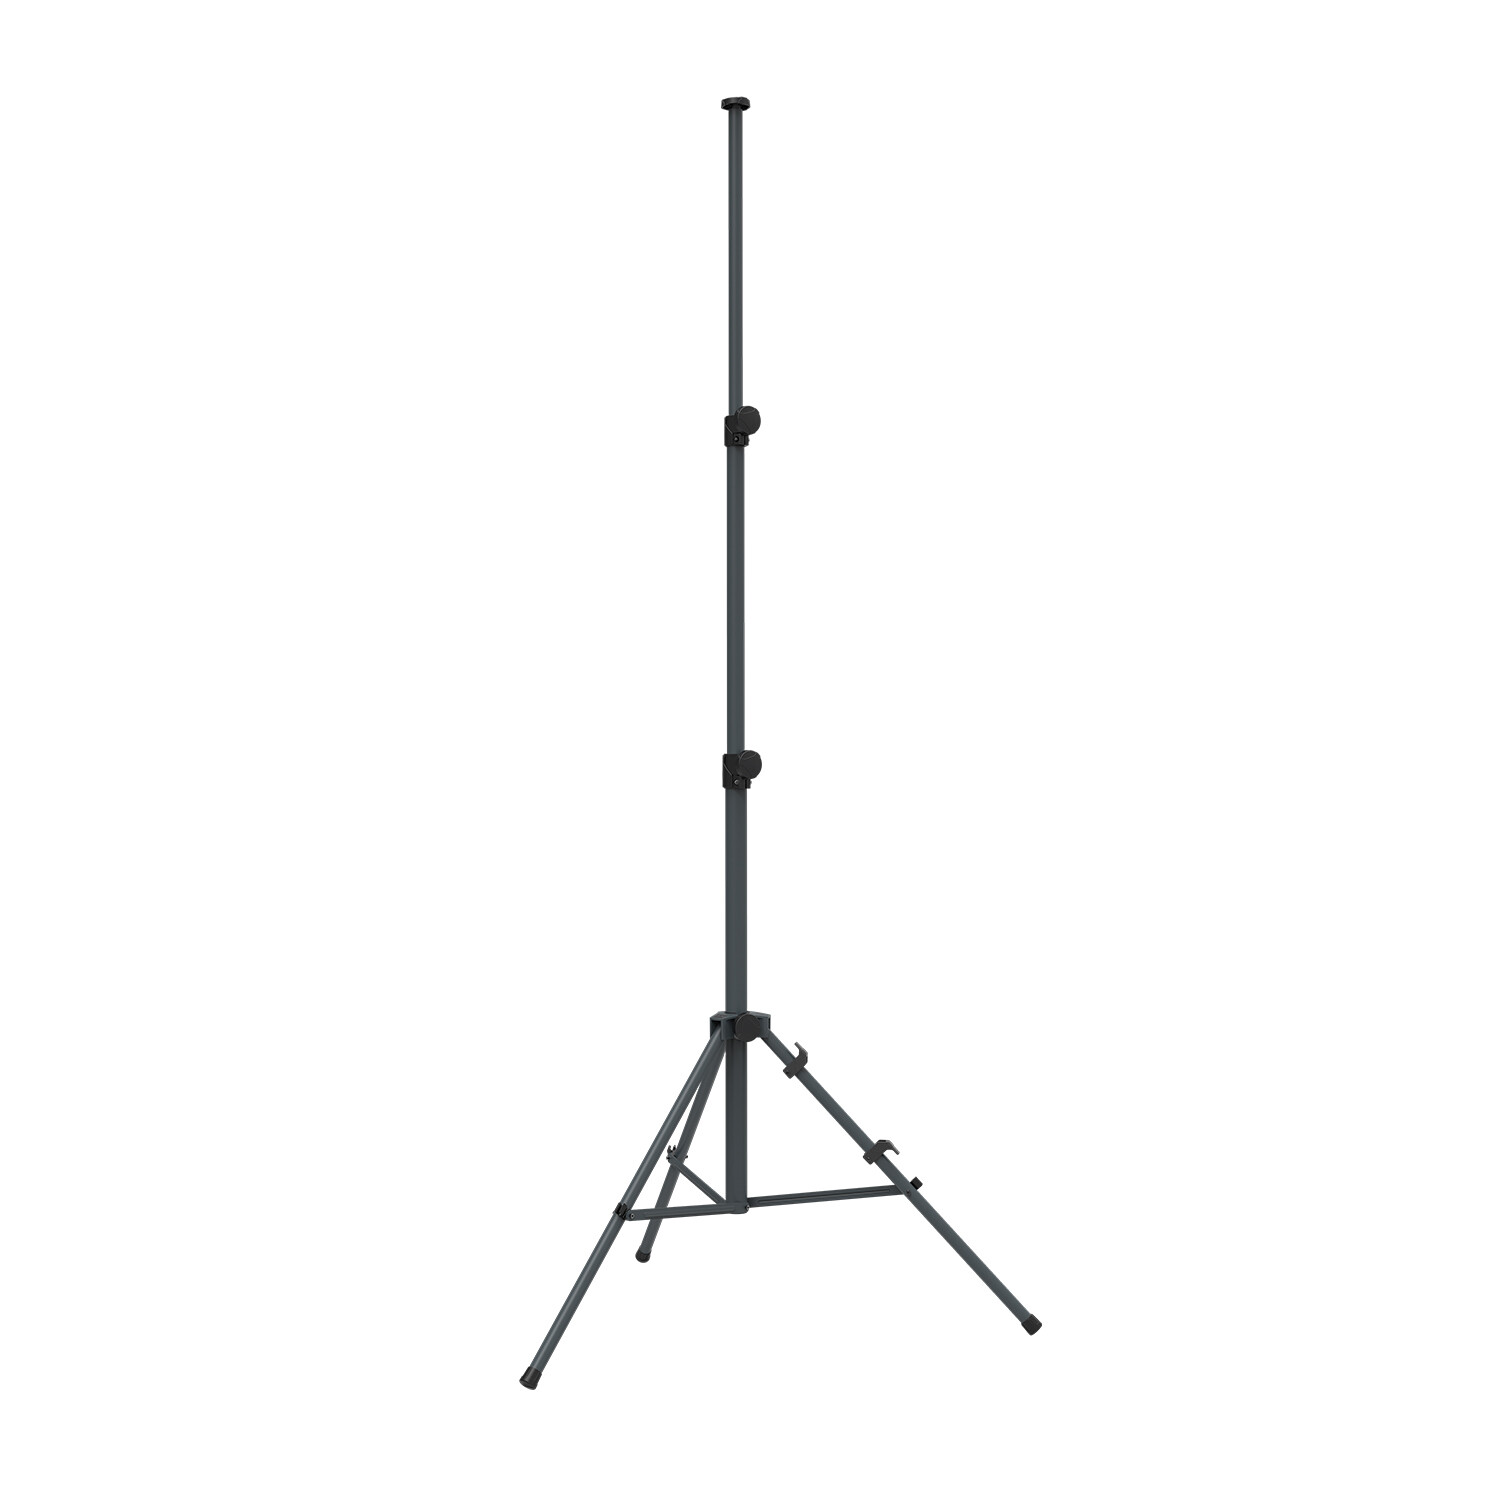 Tripod Top-class in-house development for stationary positioning of work lamps